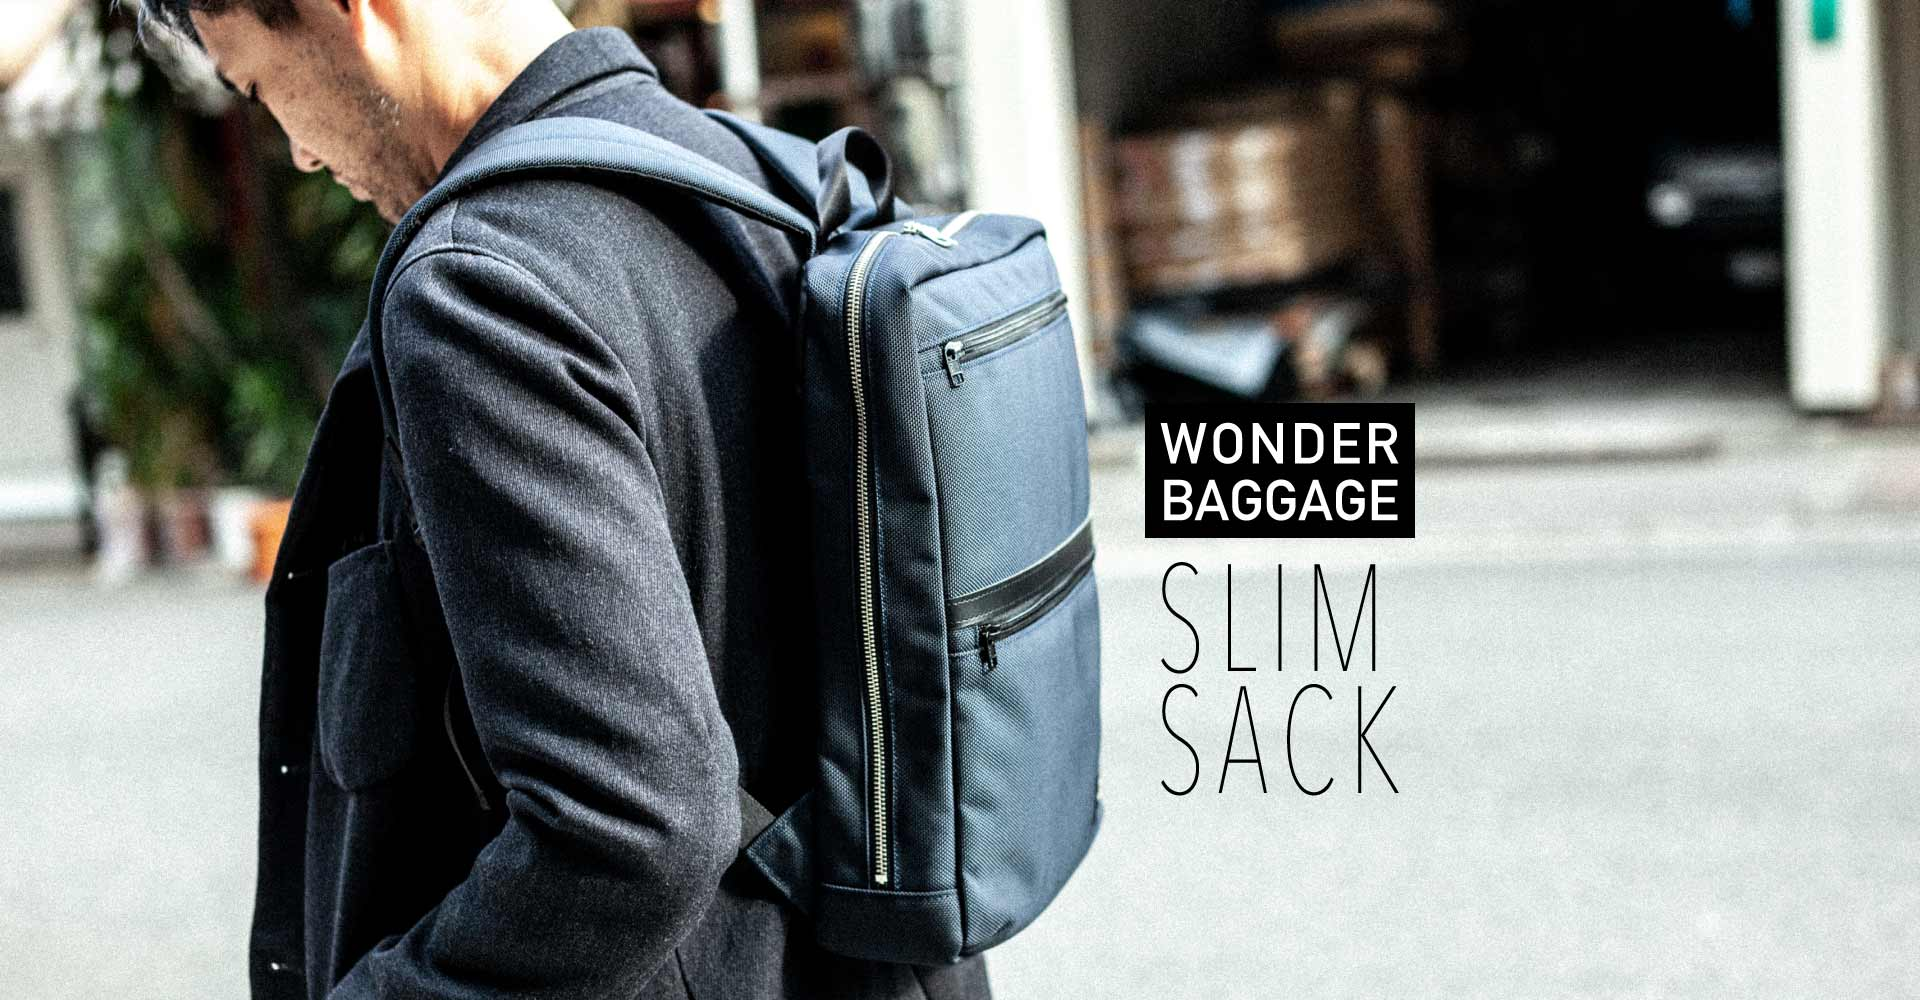 WONDERBAGGAGE slim sack